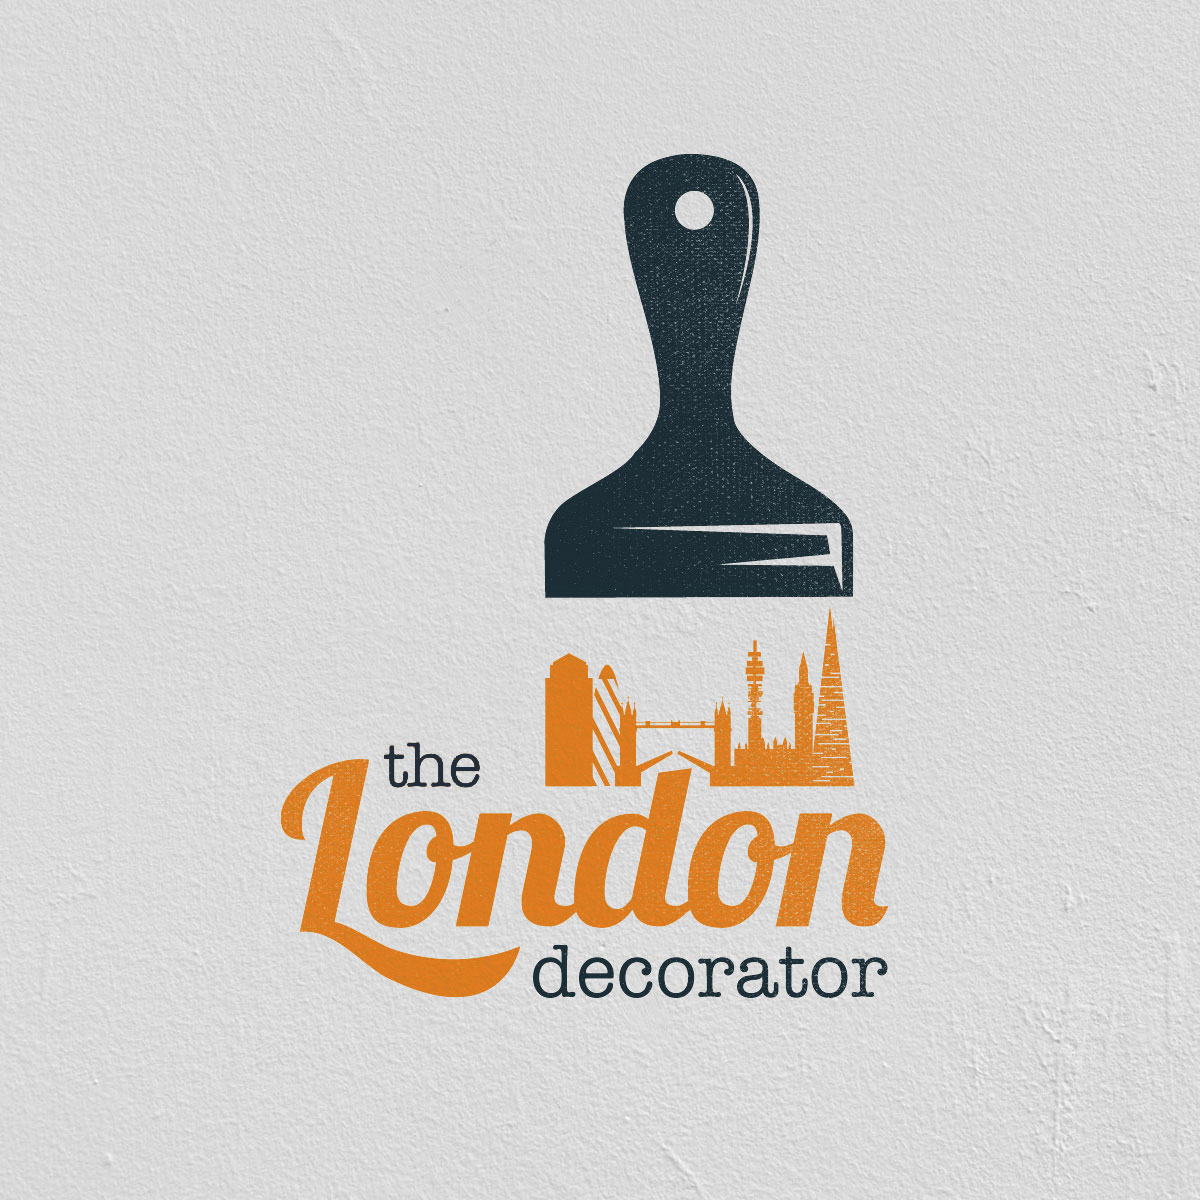 SS_03-london_decorator_logo